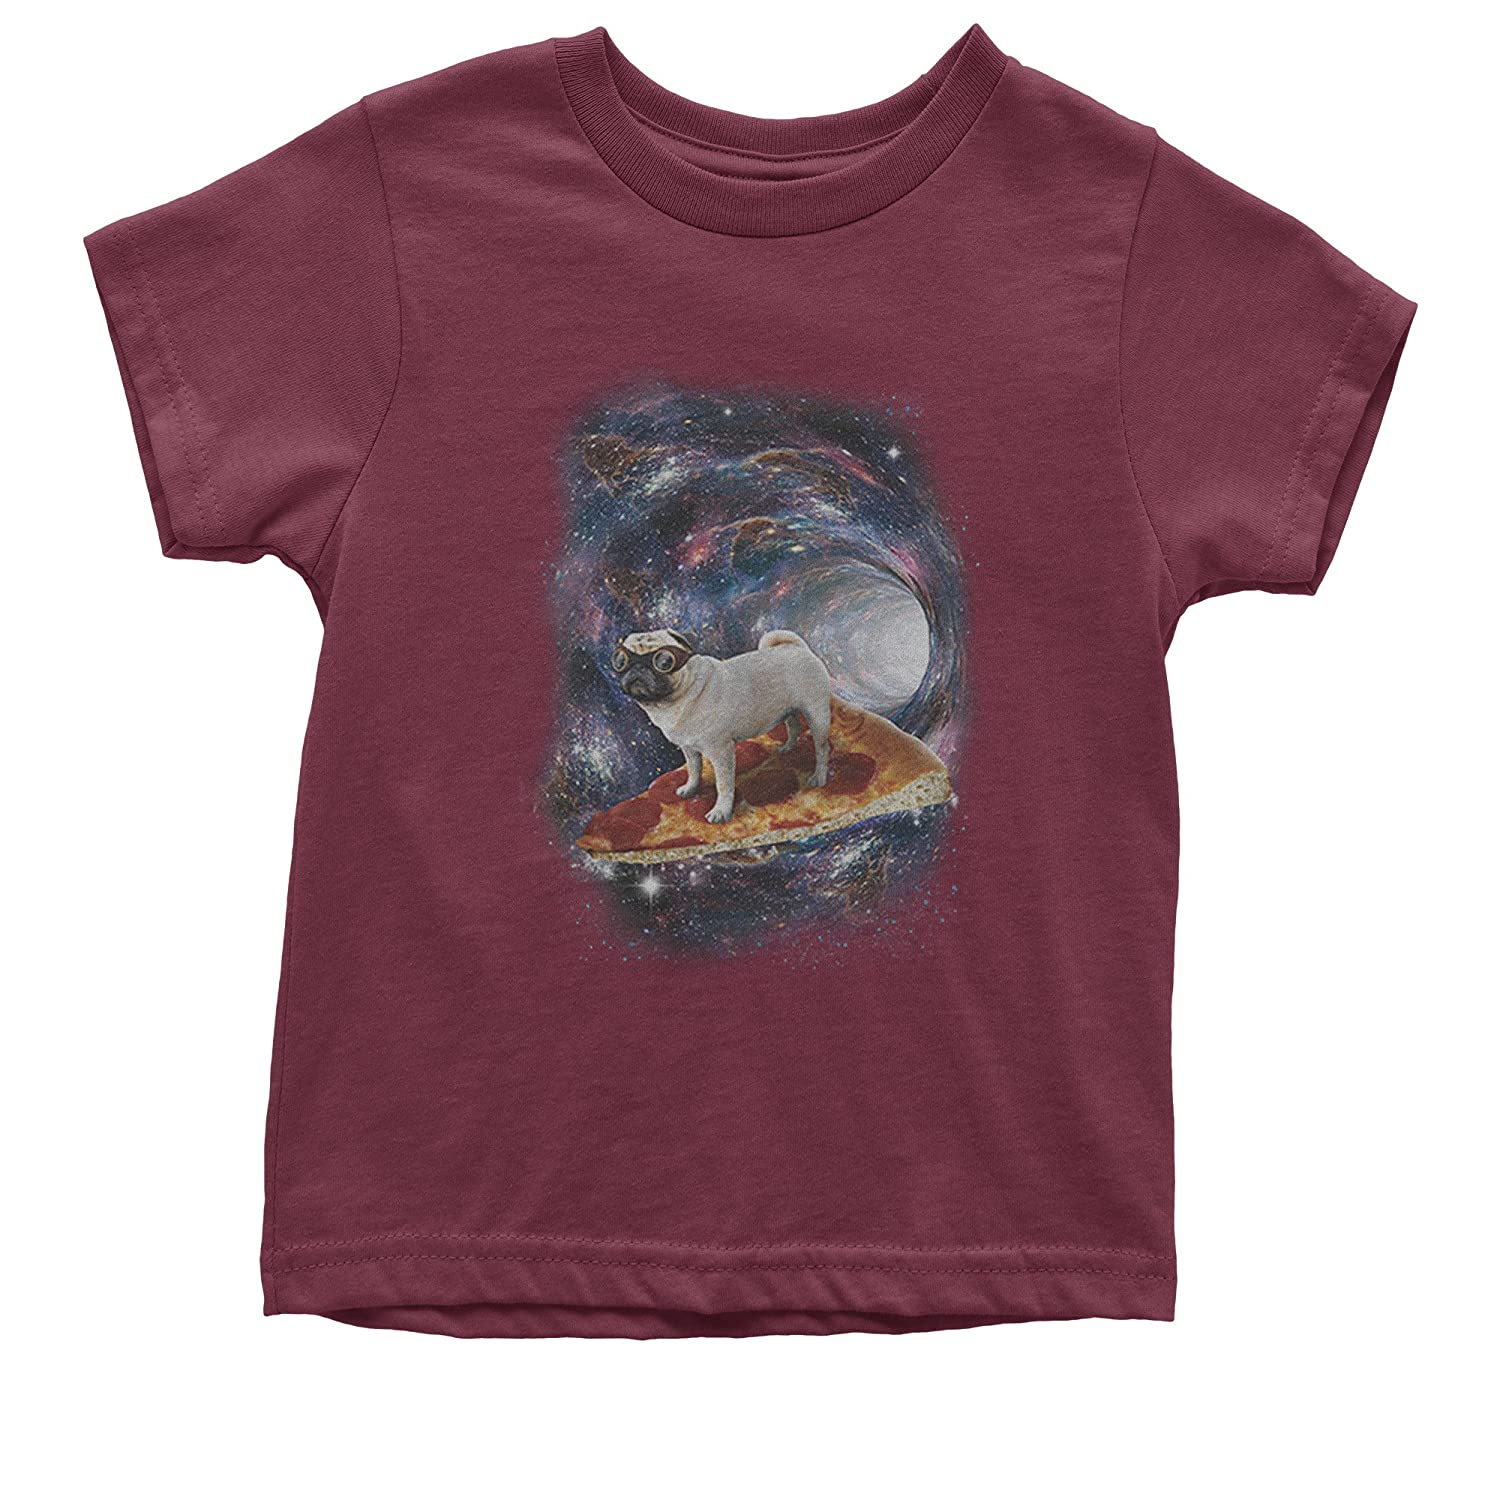 Expression Tees Pug Space Pizza Surfer Youth T-Shirt